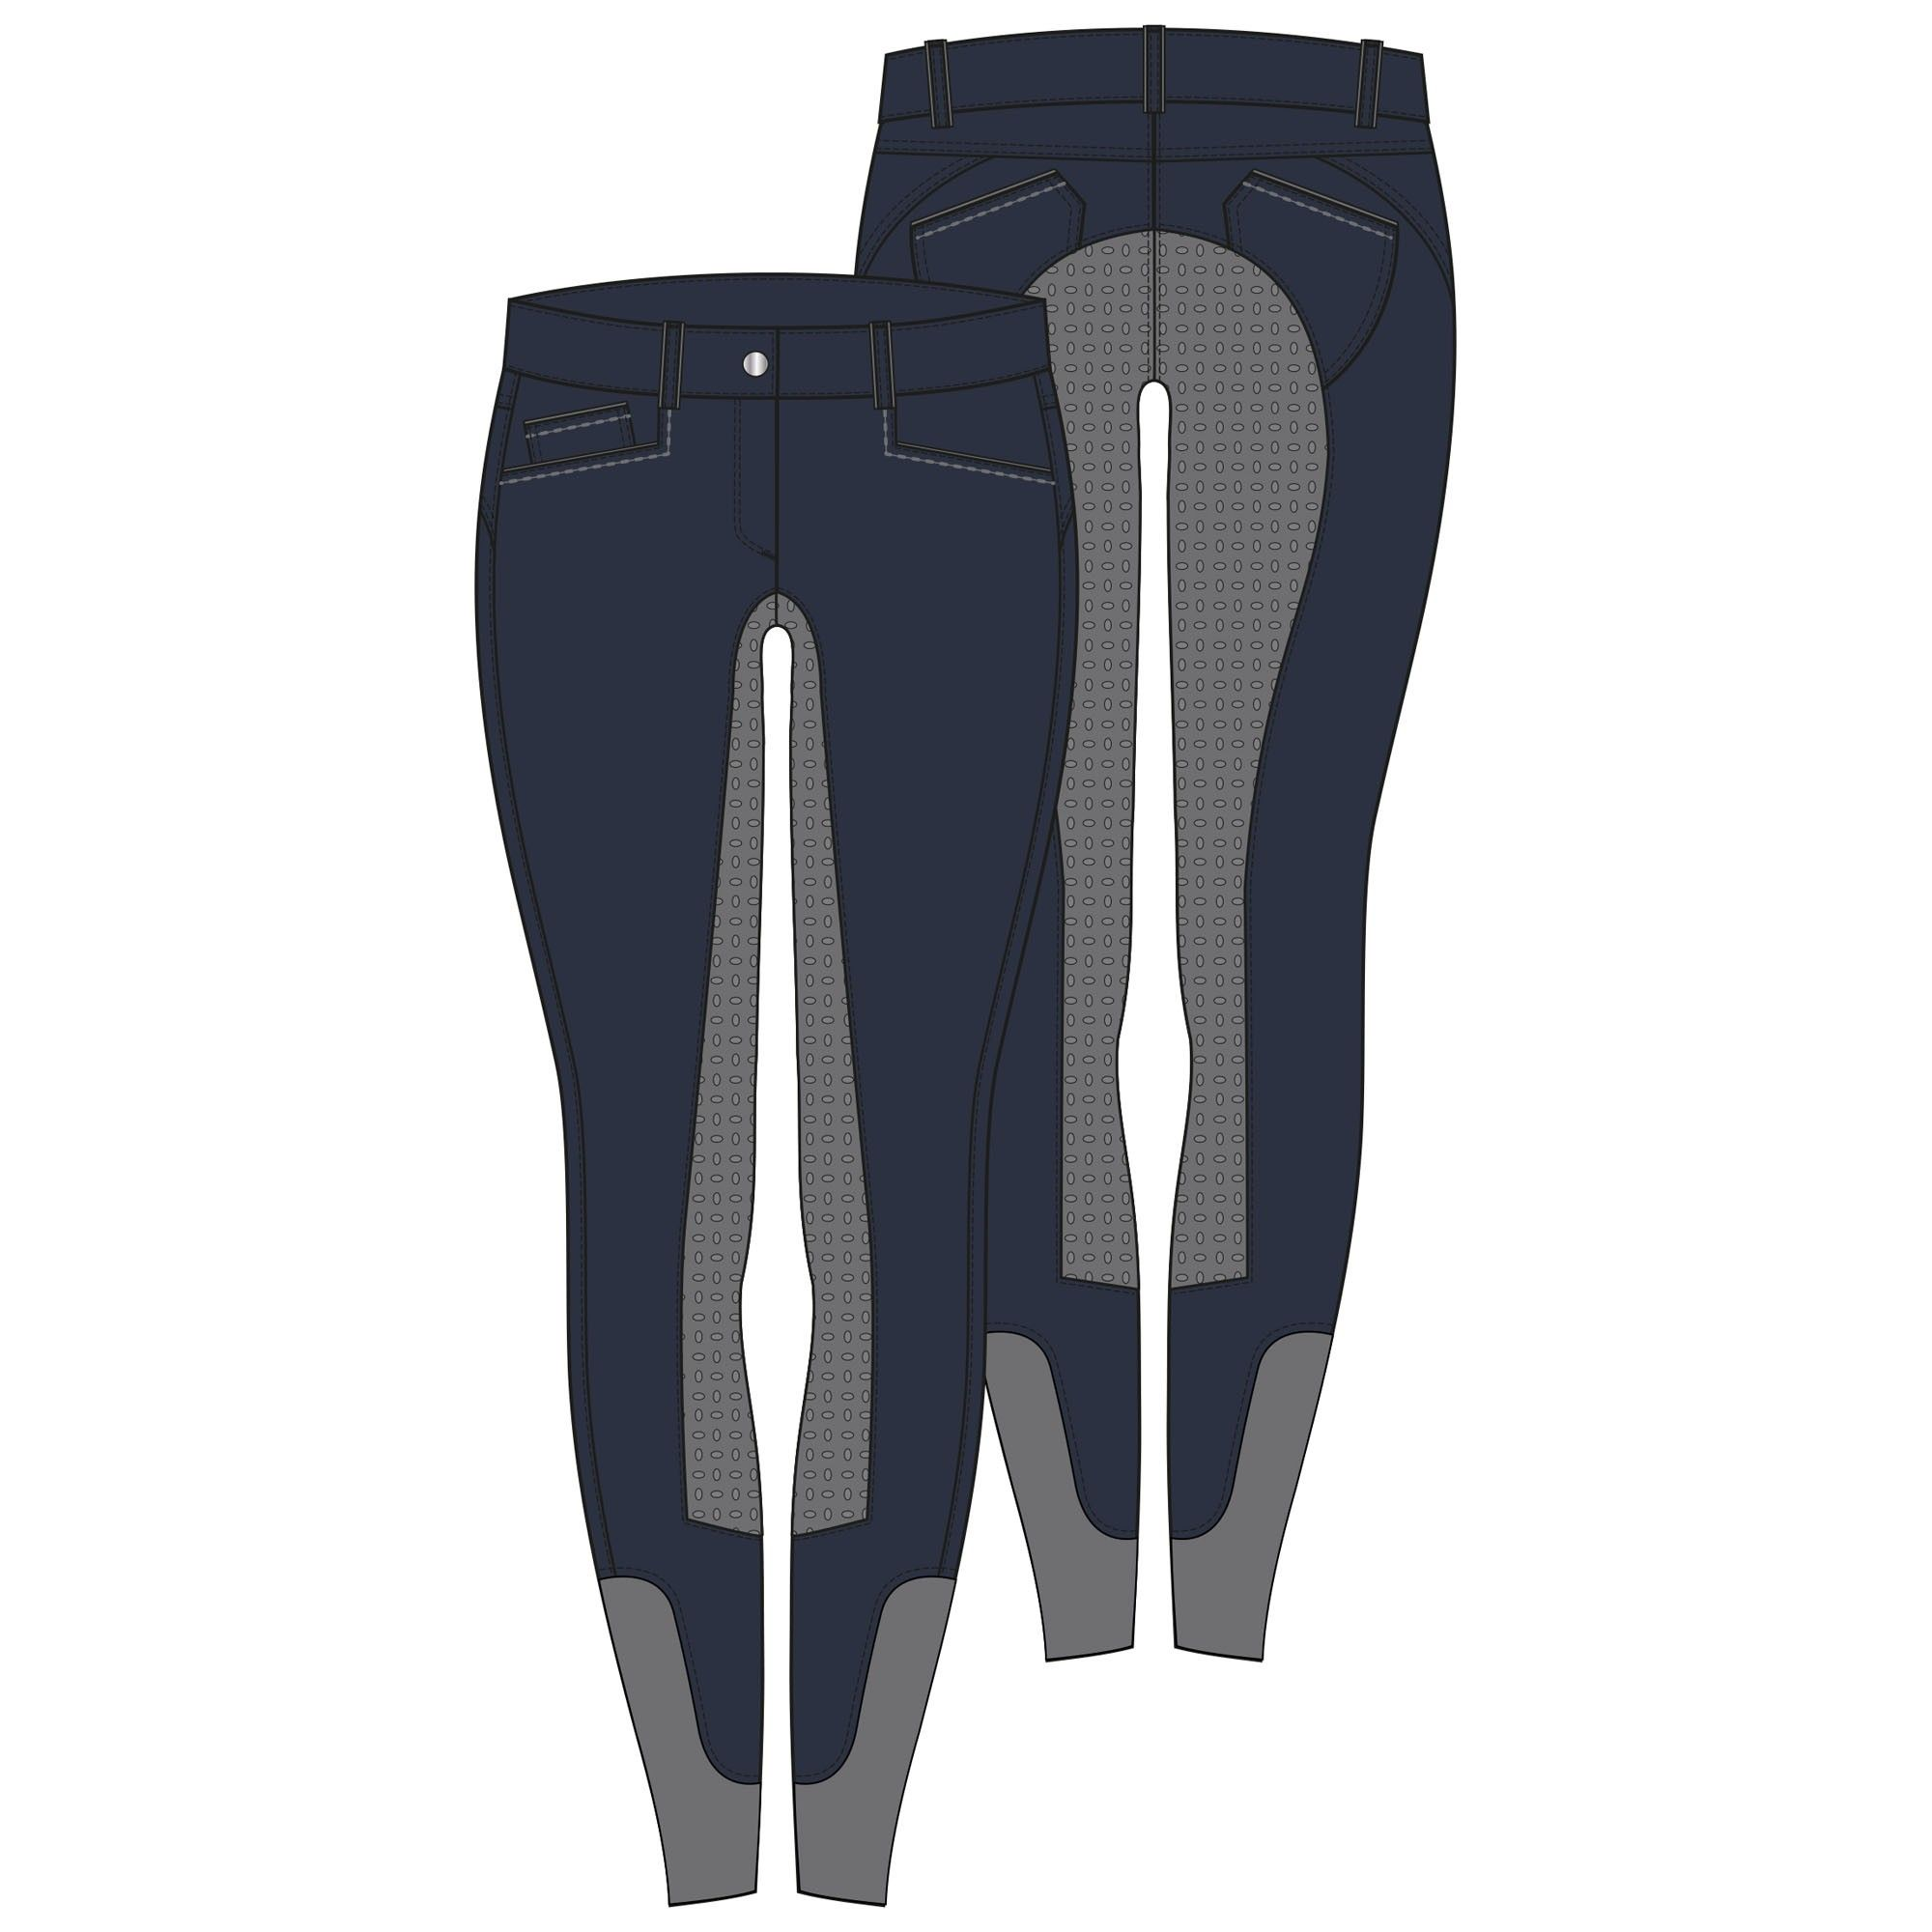 Imperial Riding Riding Breeches Lifegoals SFS